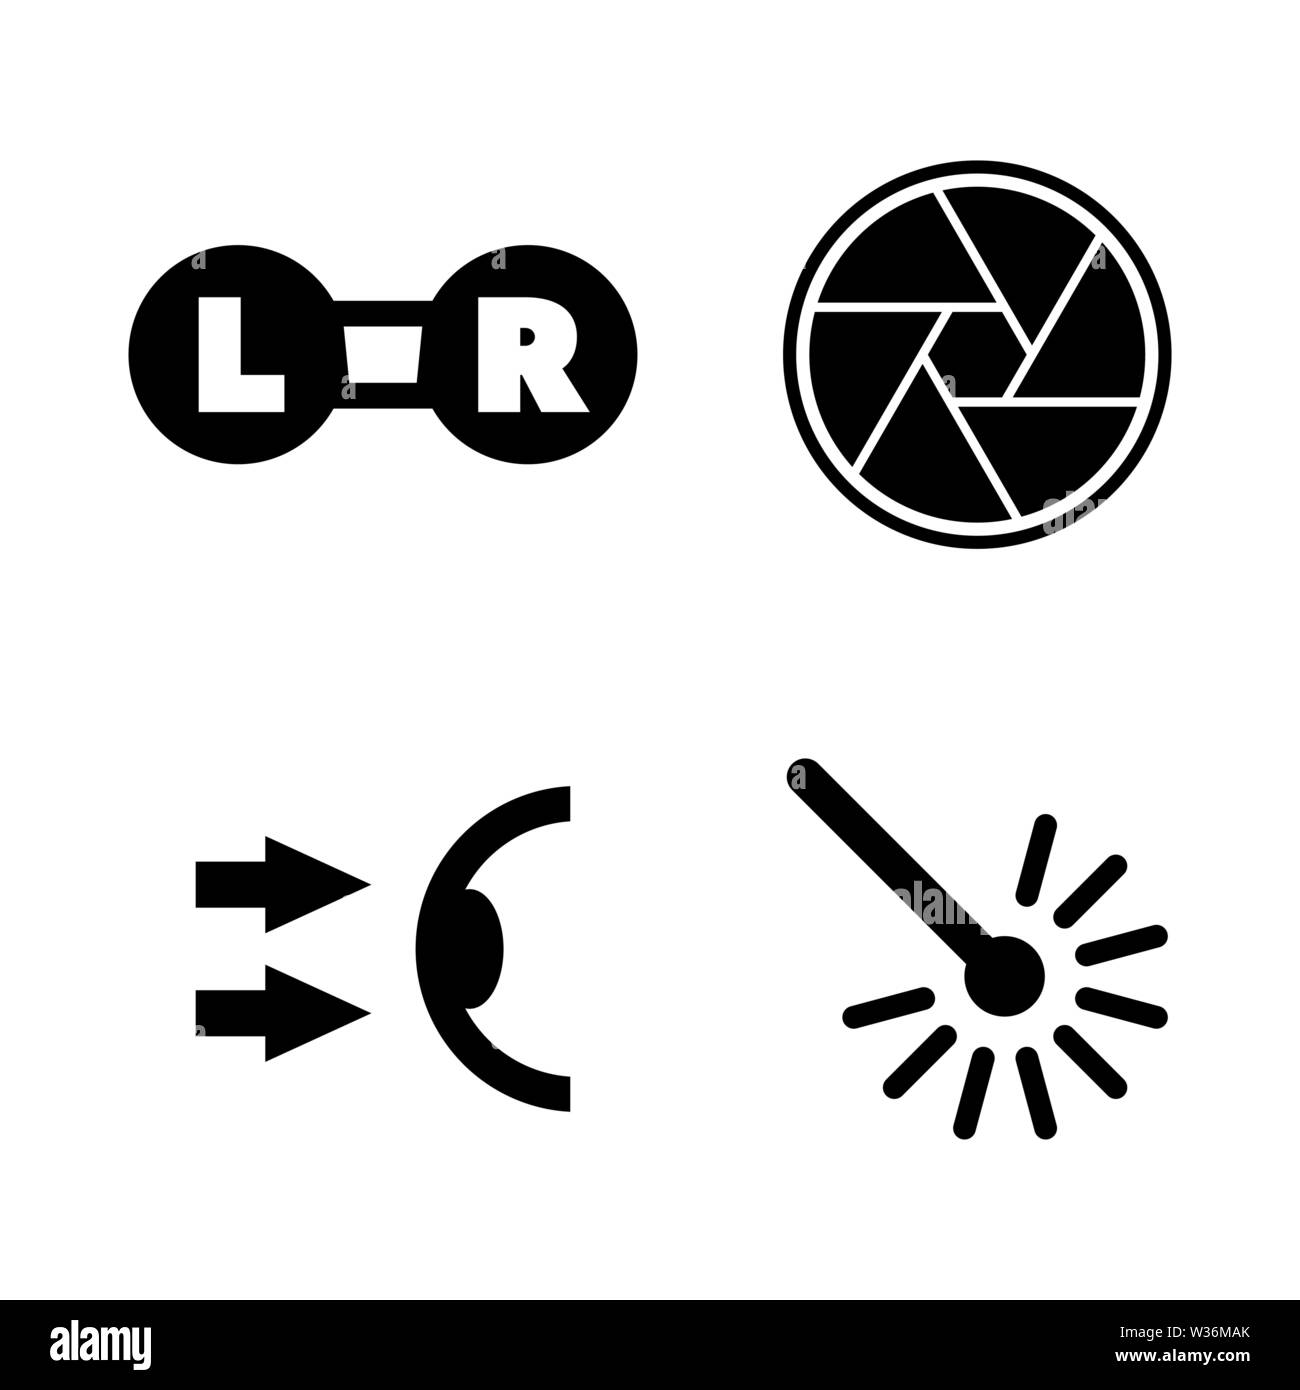 Oculist, Optometry. Simple Related Vector Icons Set for Video, Mobile Apps, Web Sites, Print Projects and Your Design. Oculist, Optometry icon Black F - Stock Image